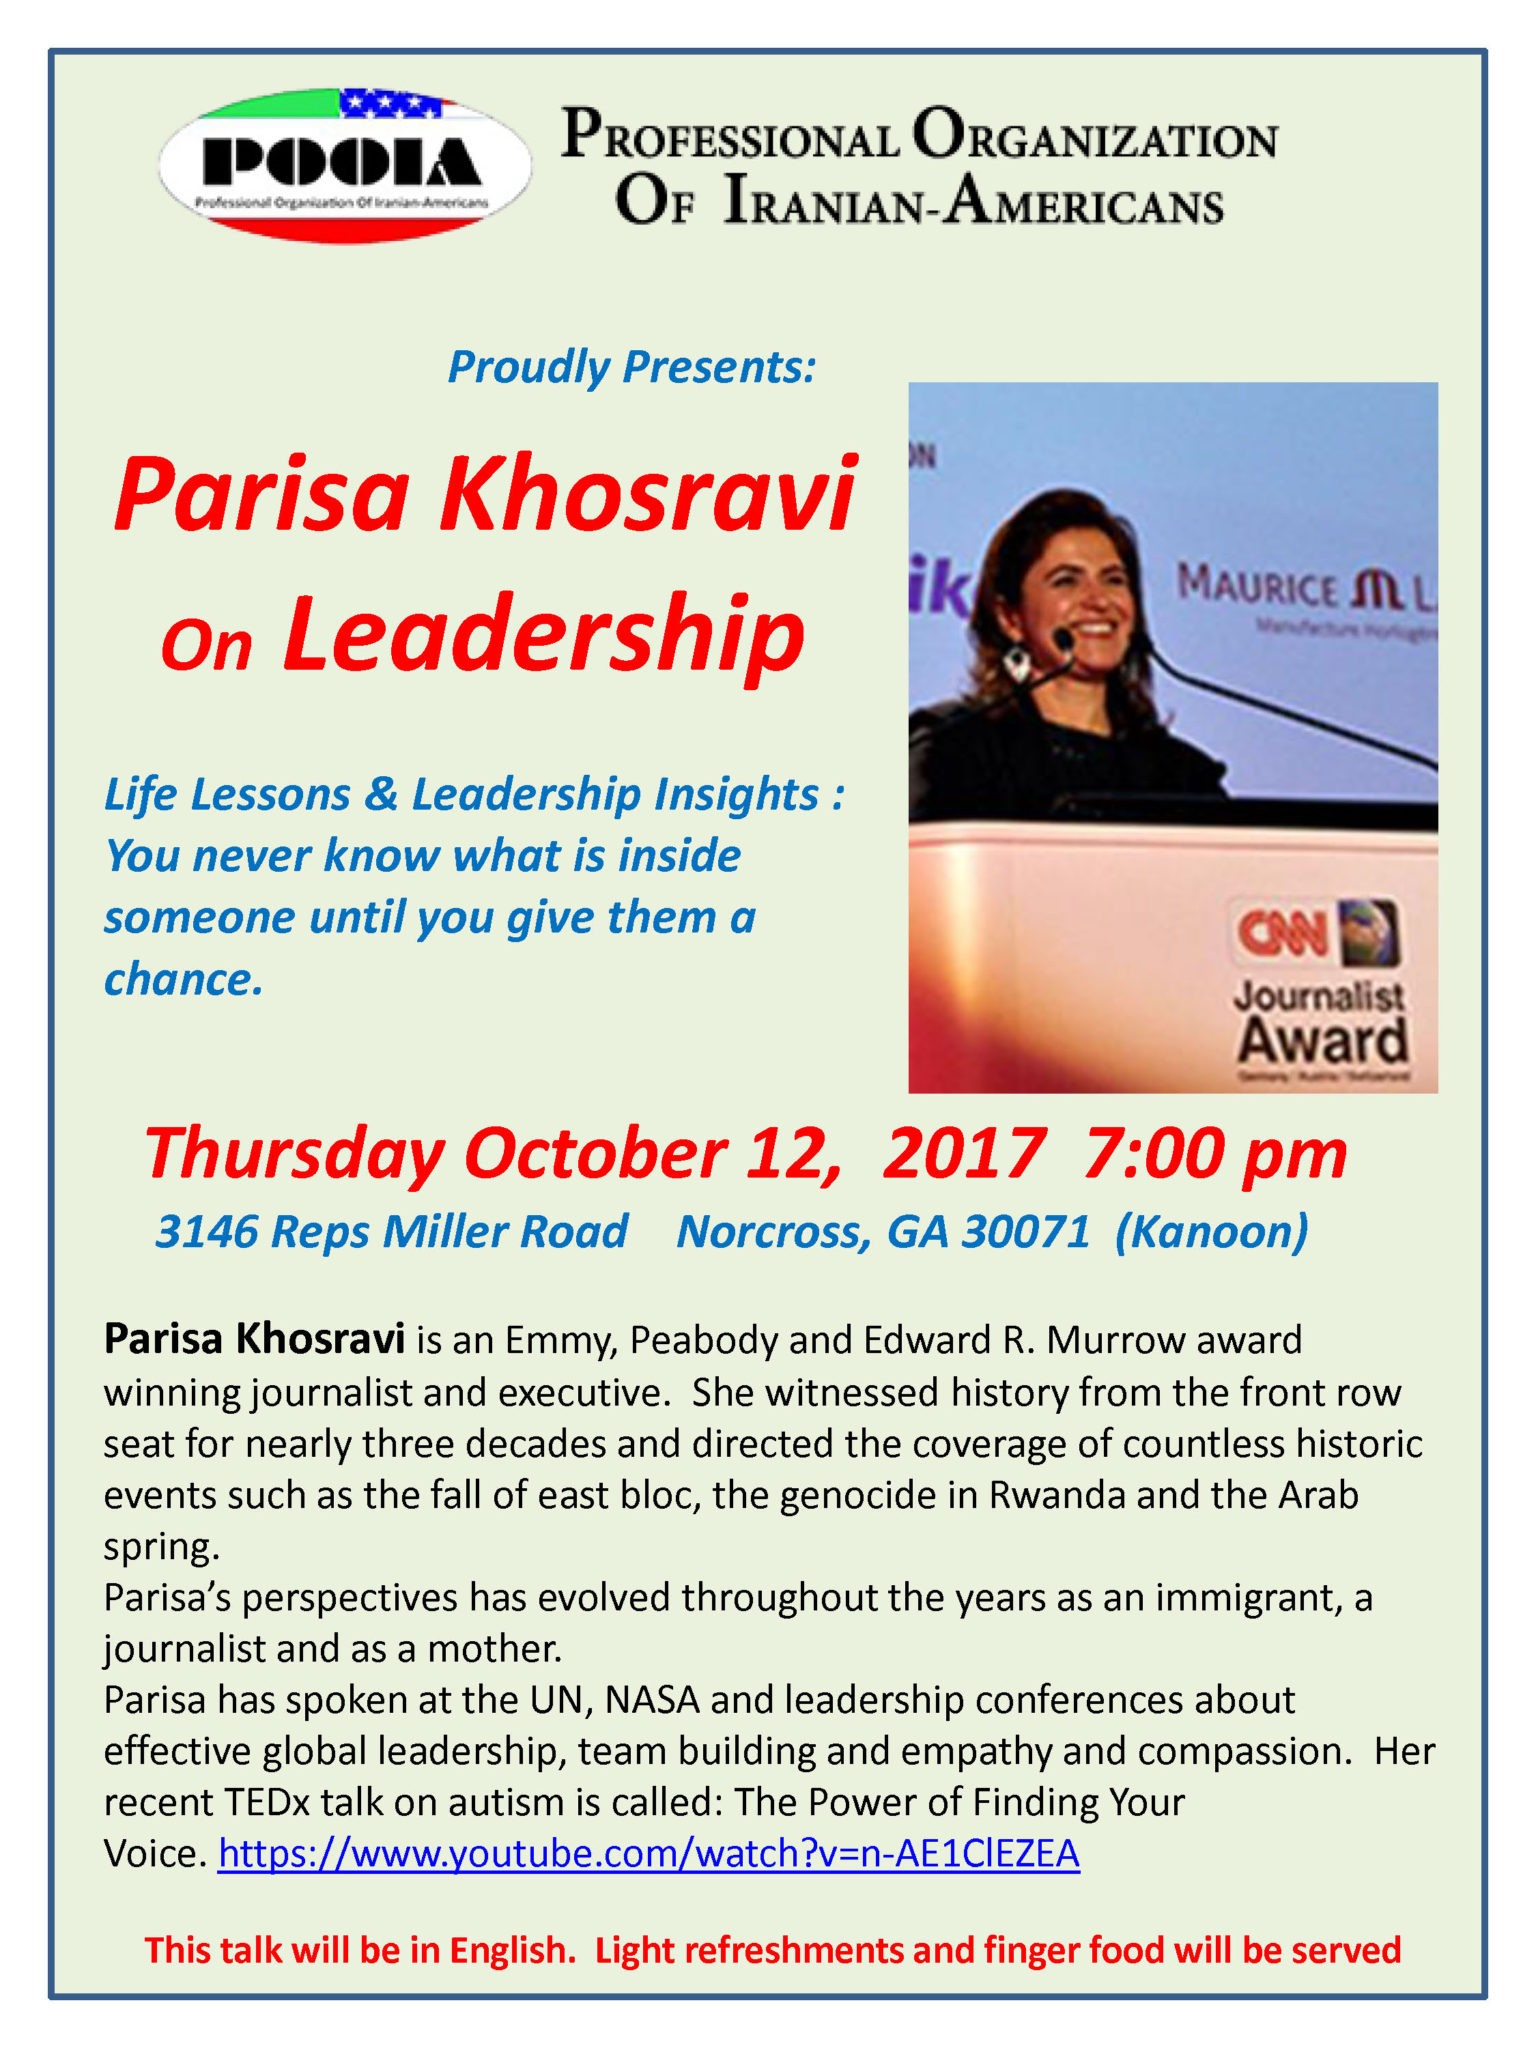 Parisa Khosravi on Leadership